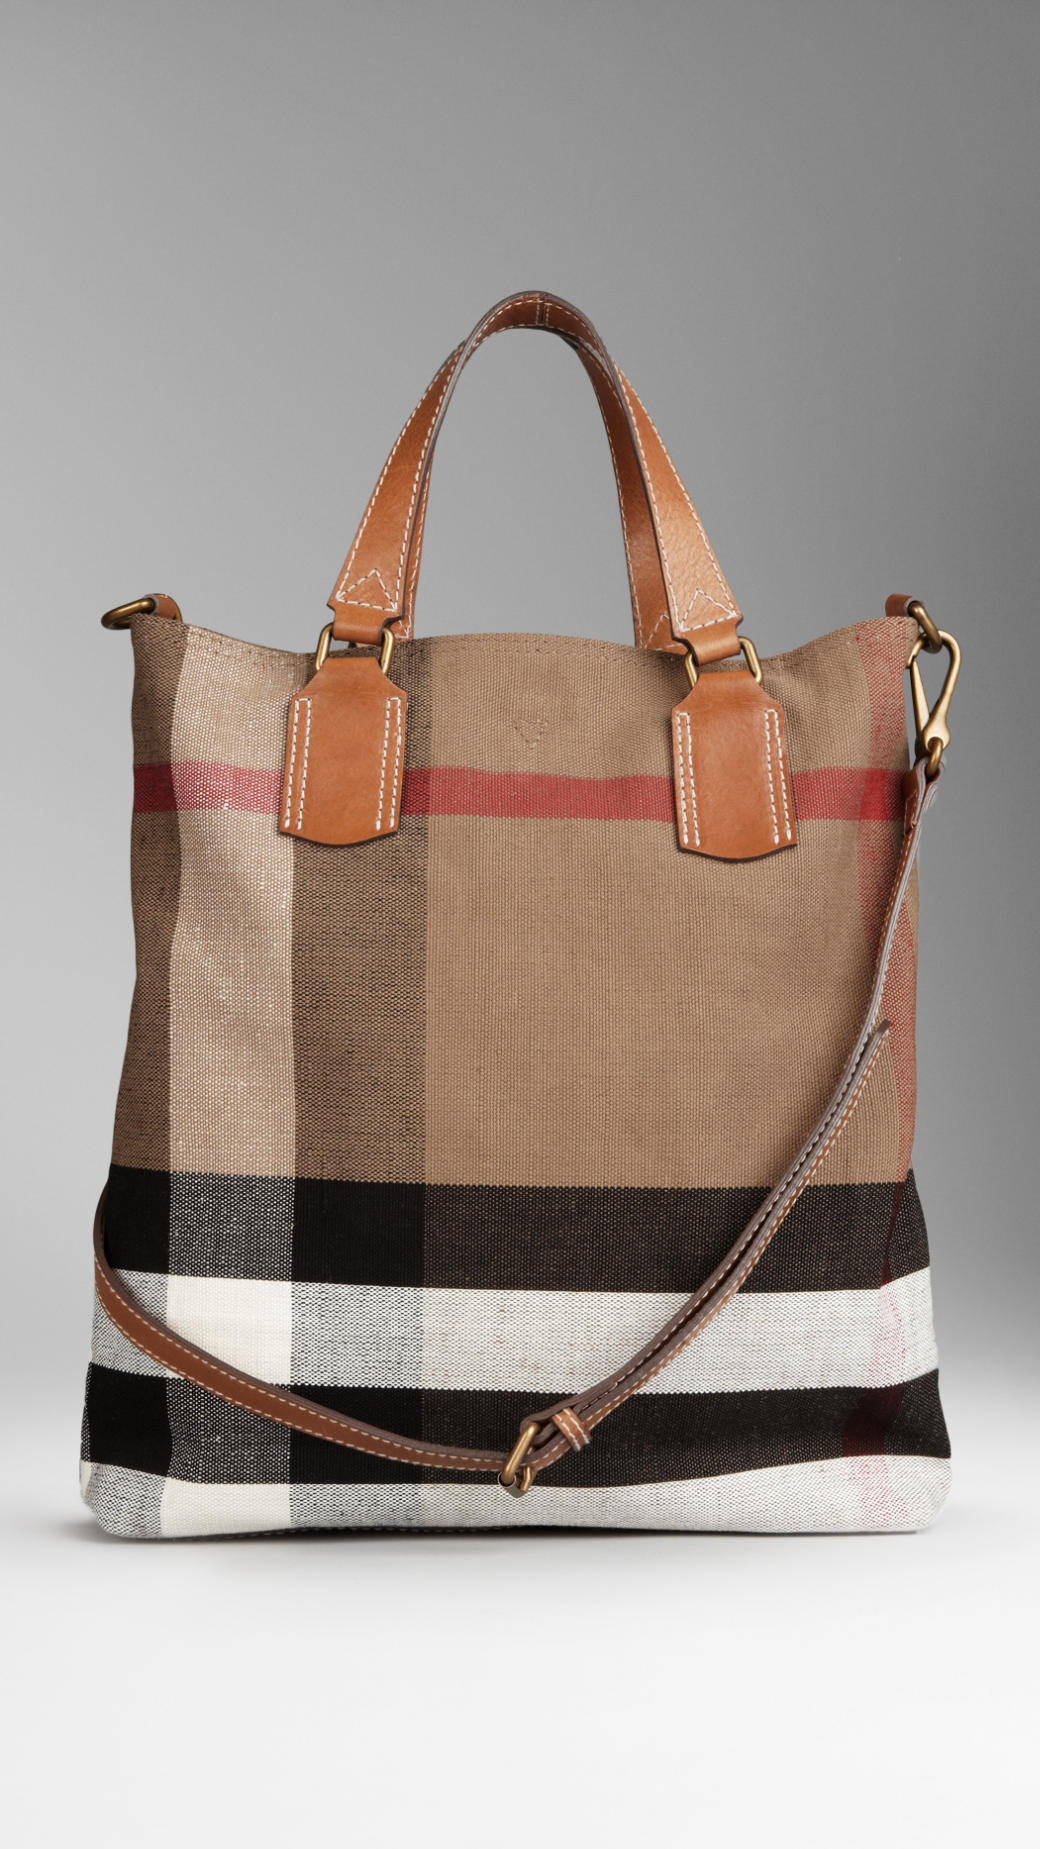 Lyst - Burberry Medium Canvas Check Tote Bag in Brown